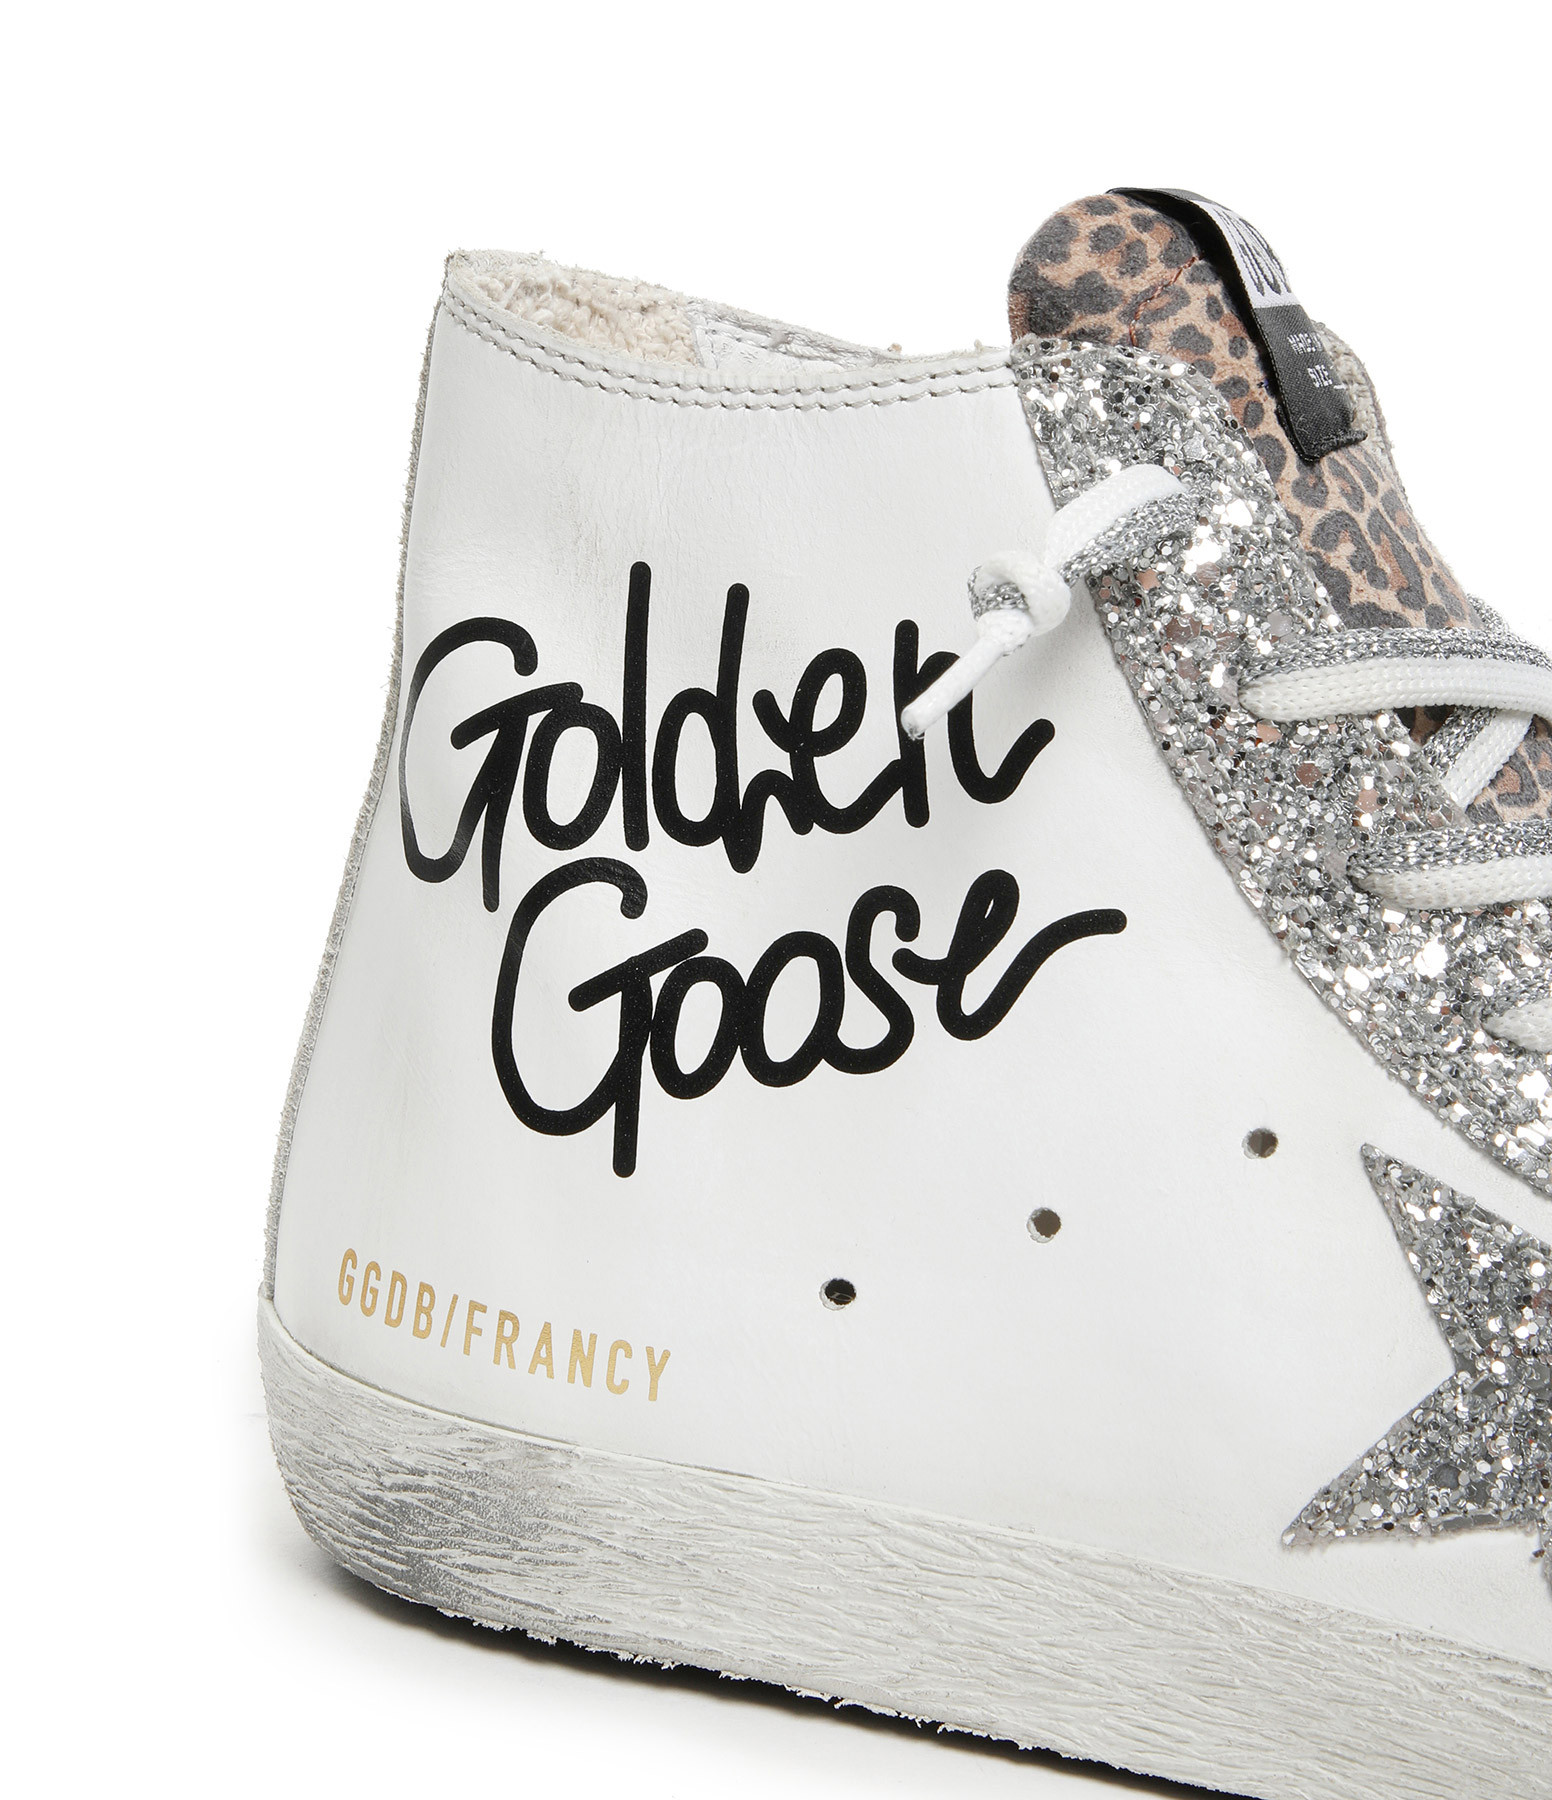 GOLDEN GOOSE - Baskets Francy GGDB Cuir Blanc Argenté